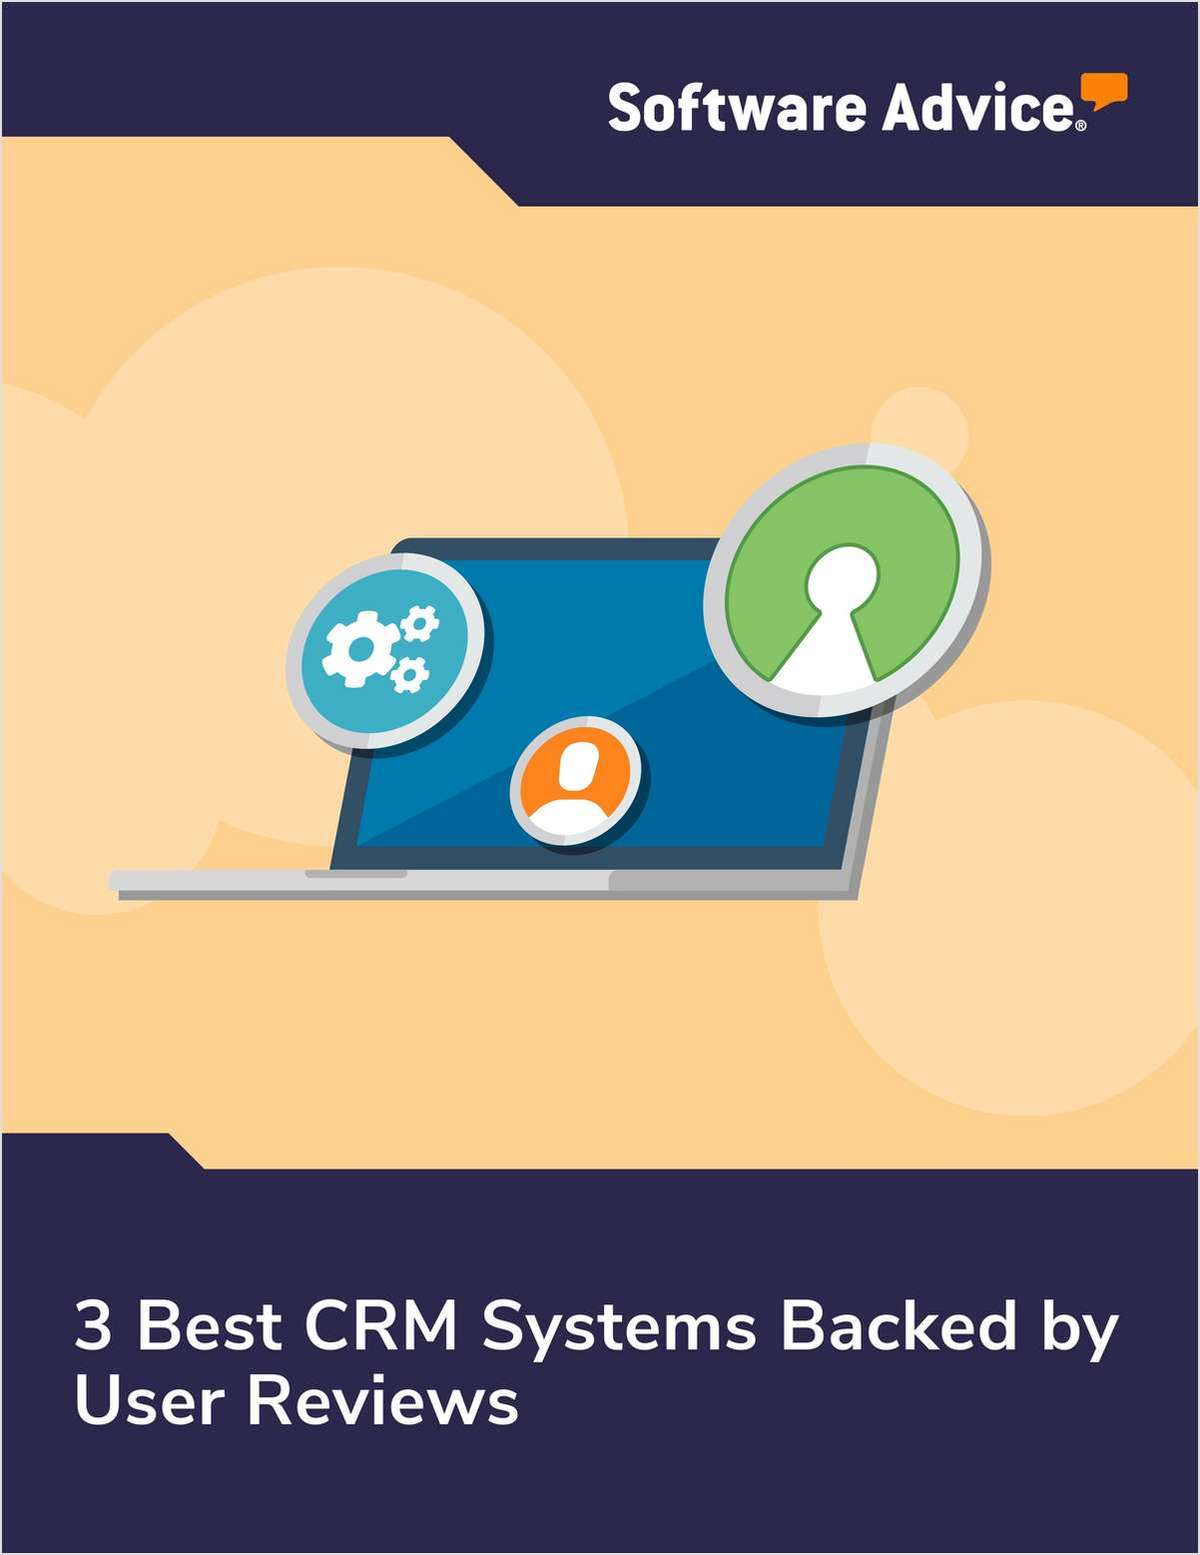 3 Best CRM Systems Backed by User Reviews